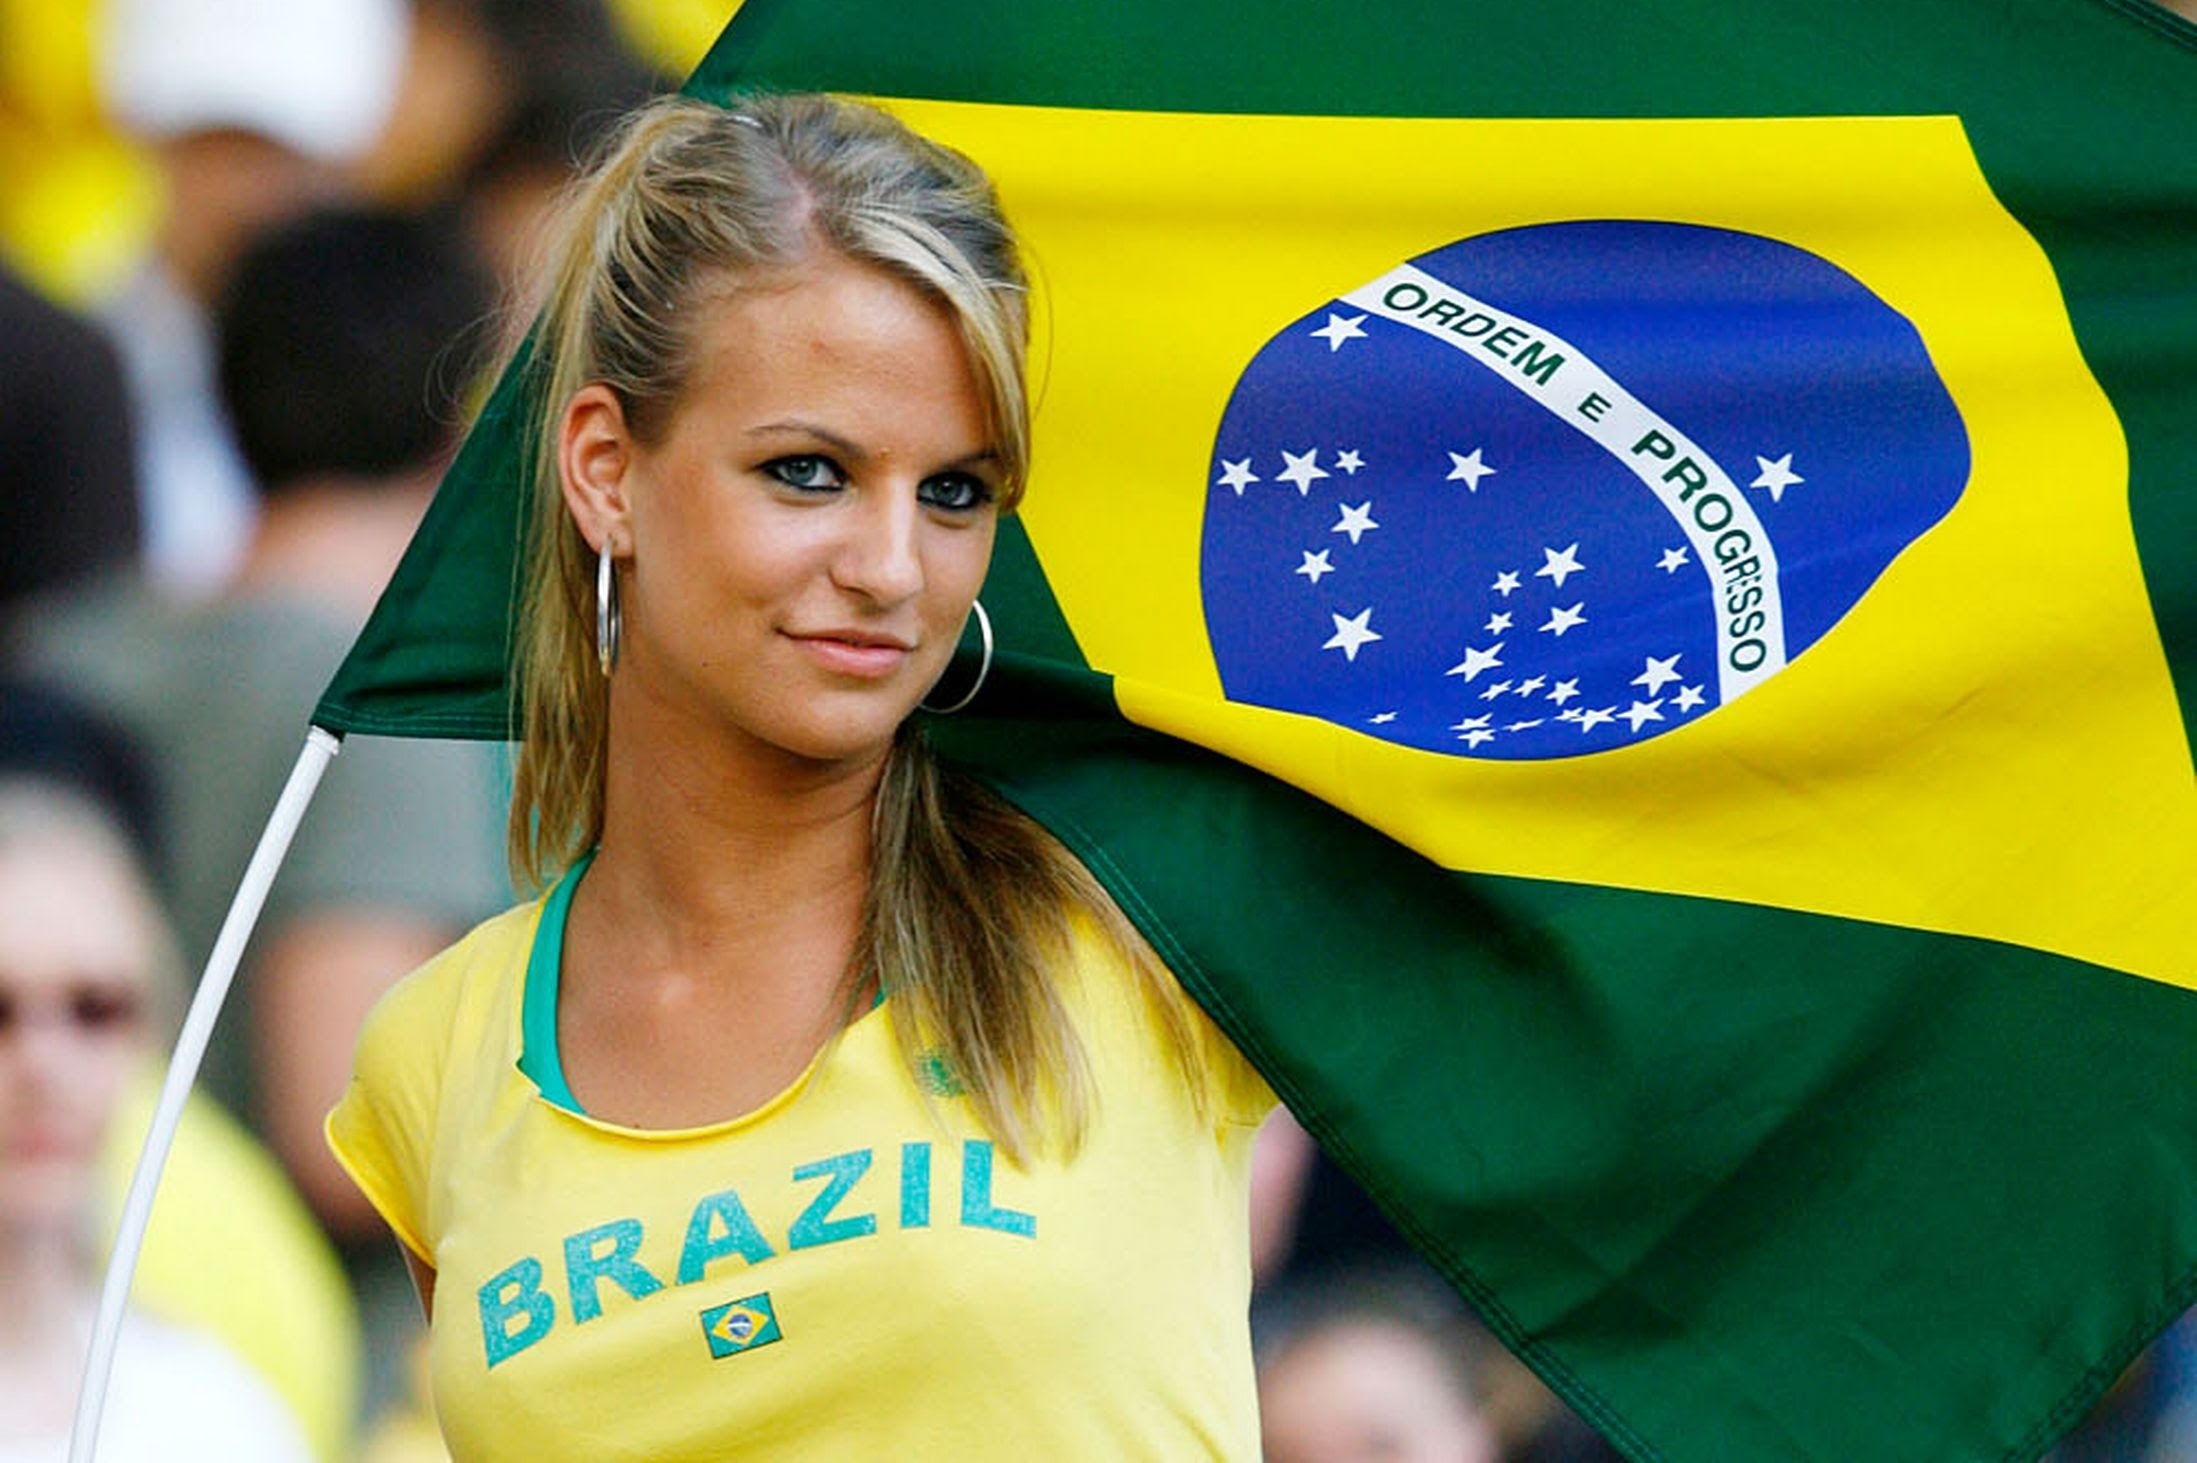 brazil-hot-girls